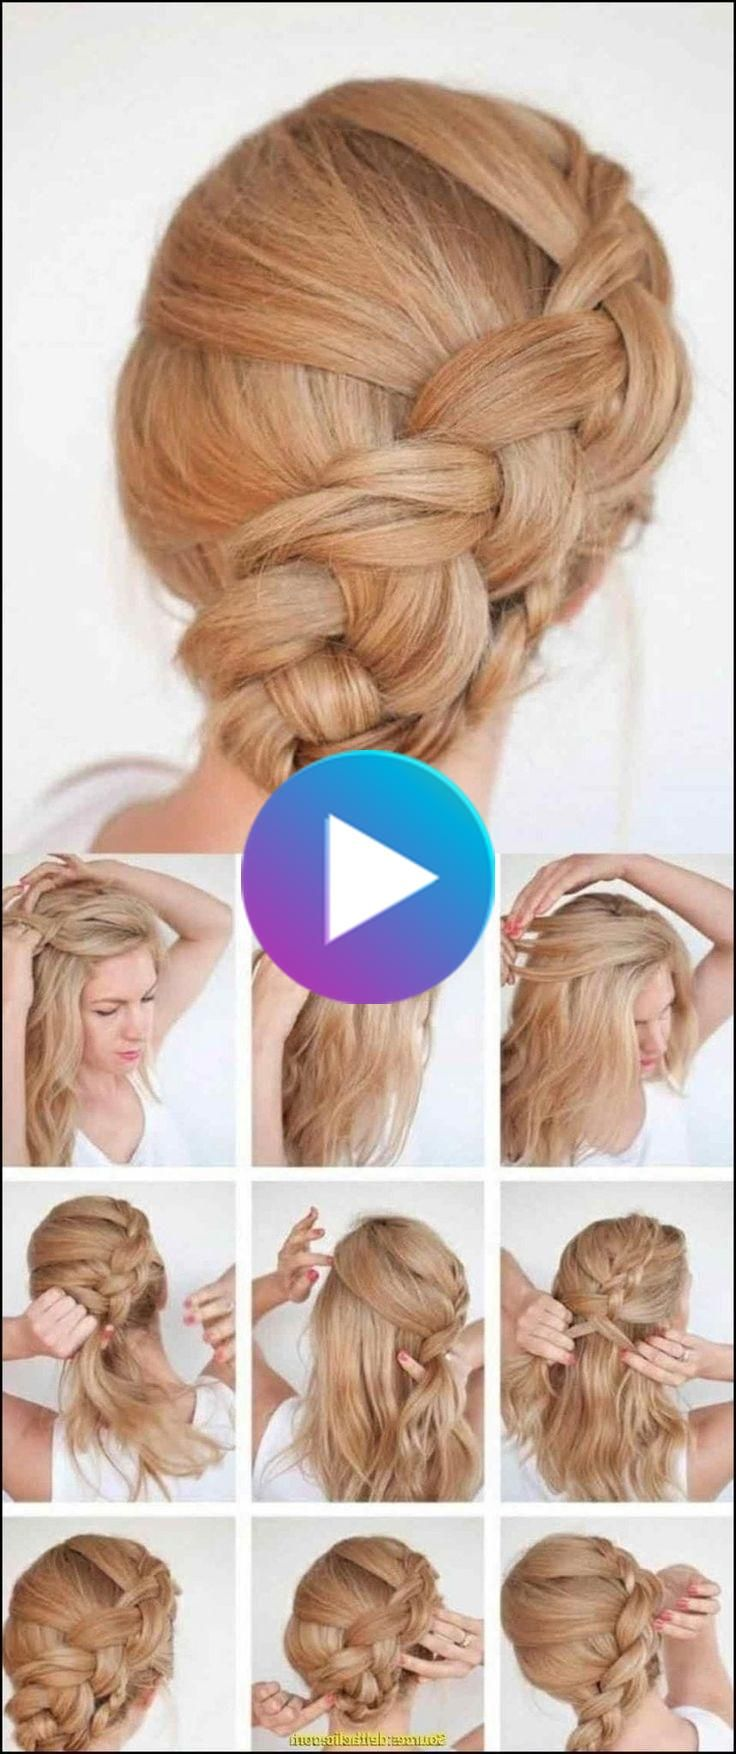 8+ simple hairstyles for long hair - top fashionable dresses in